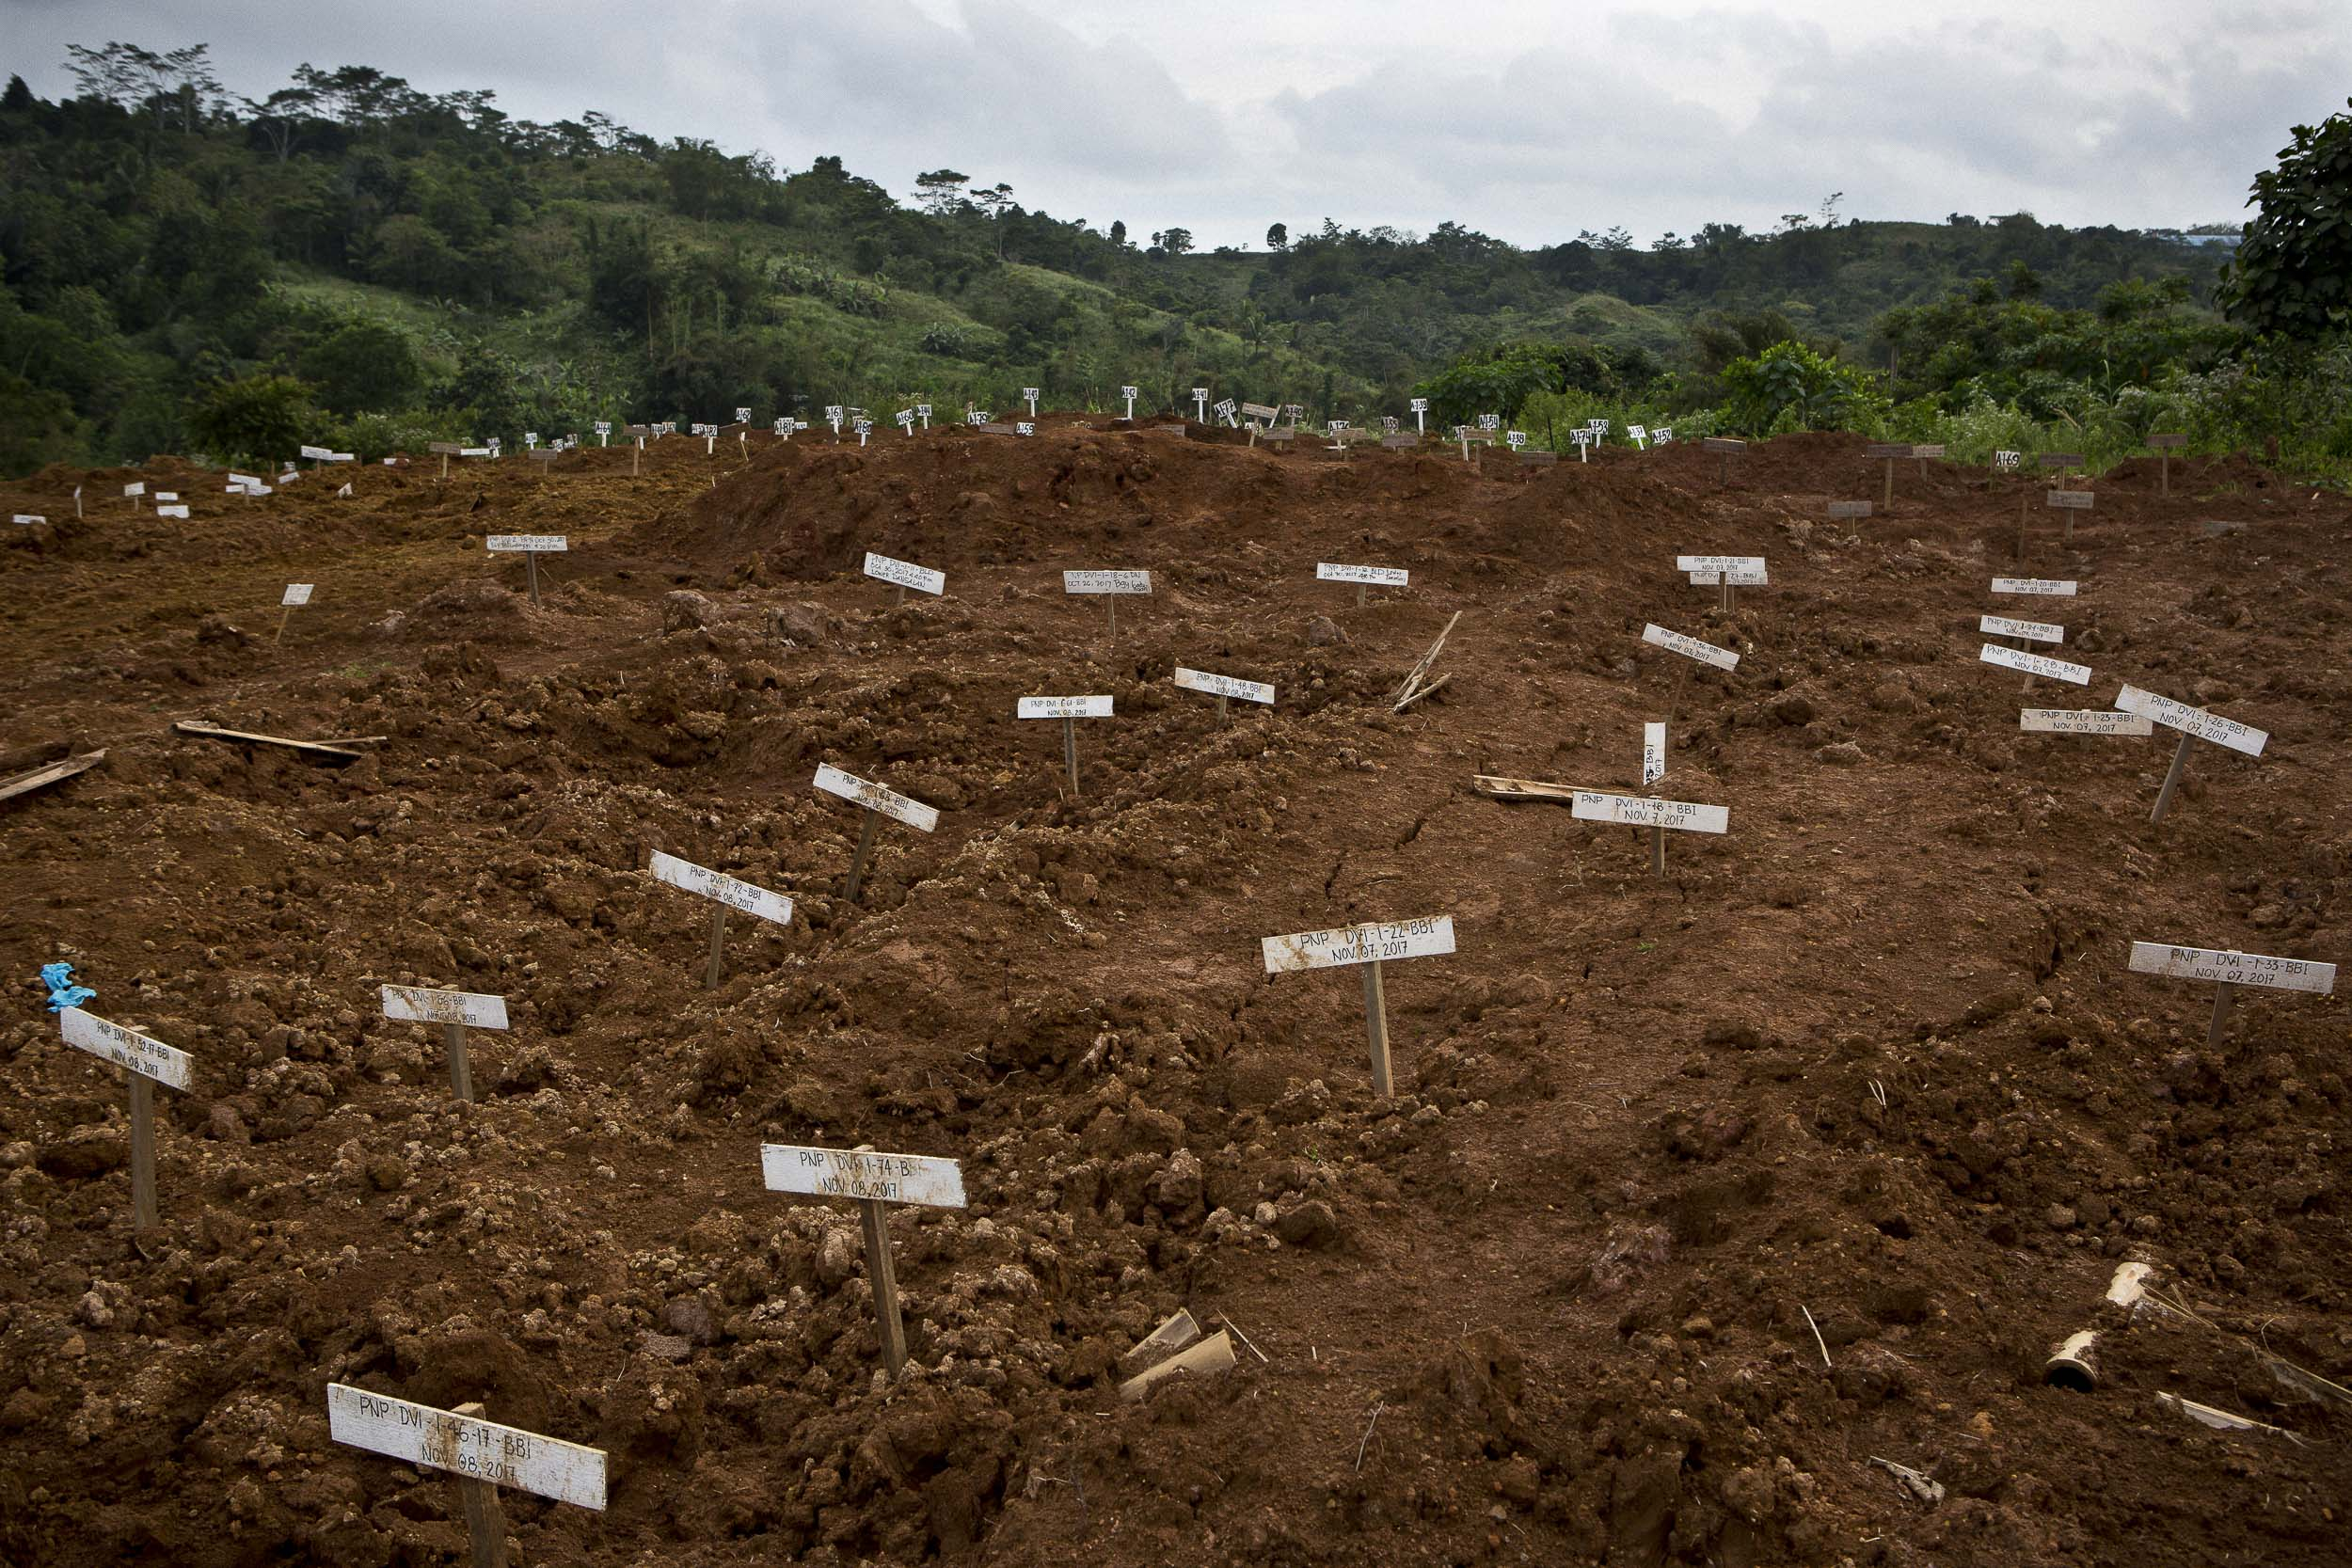 A temporary burial site for unidentified bodies killed during the siege of Marawi. Each grave has been identified with a code that corresponds with data collected from the corpse in hopes of later identifying the body.